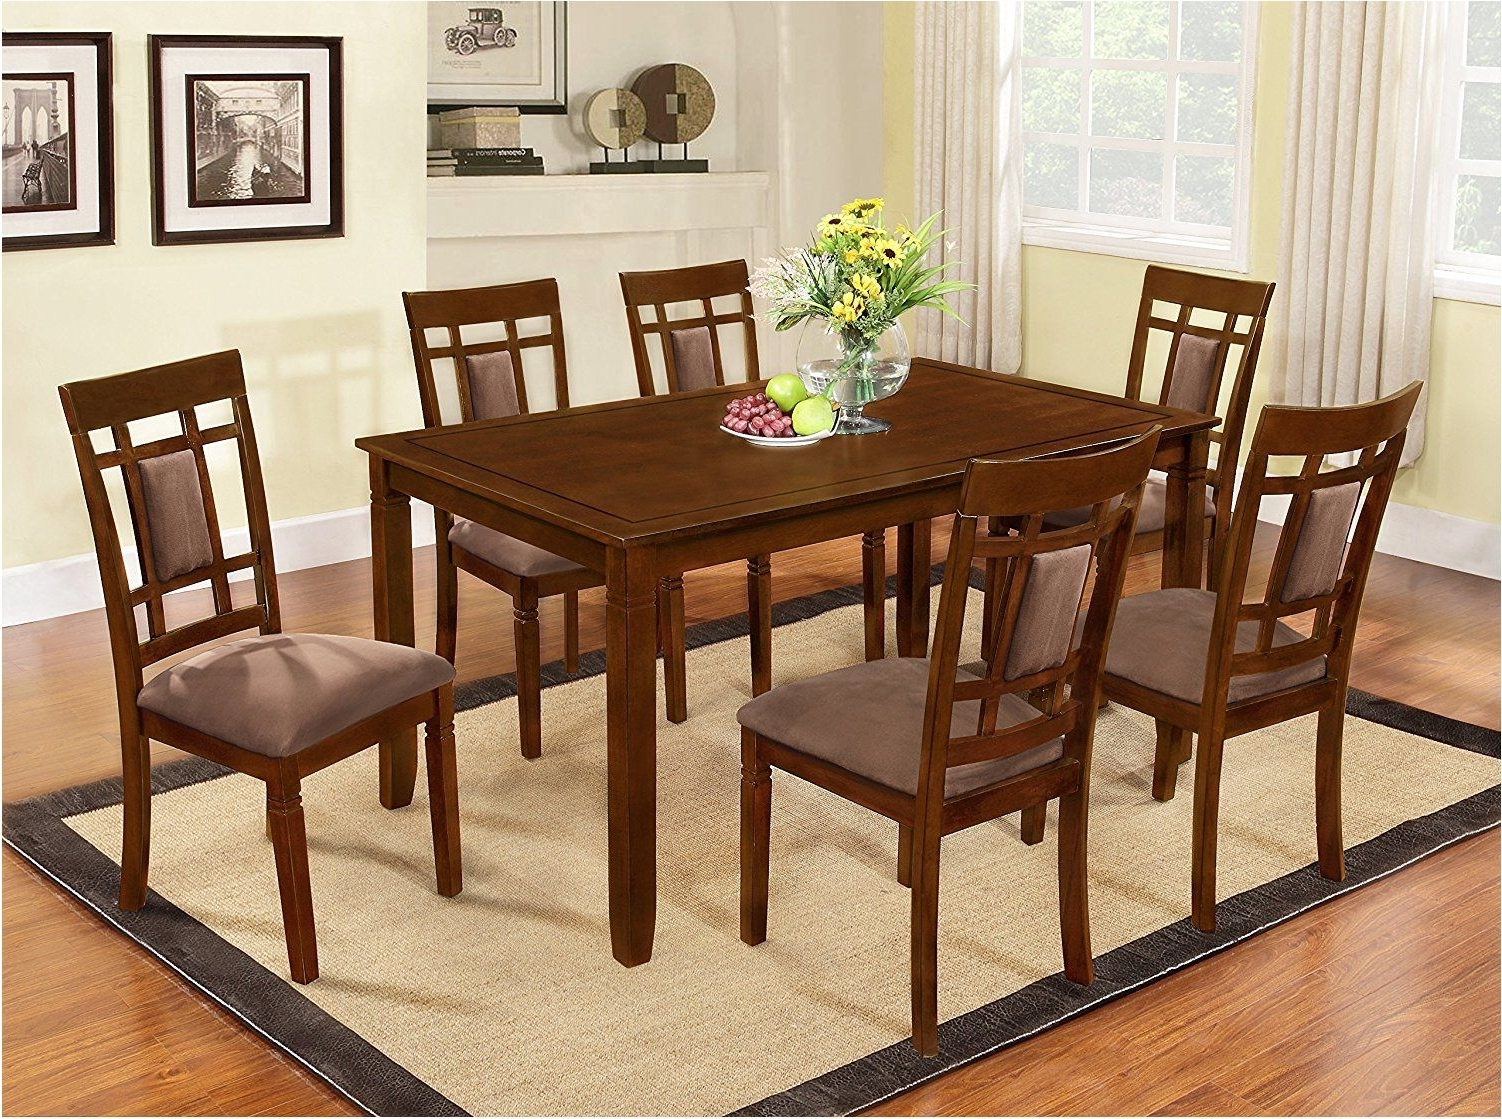 Latest Wooden Dining Sets Inside Marvelous Comfy Wood Dining Table And Chairs Contemporary Black (View 13 of 25)